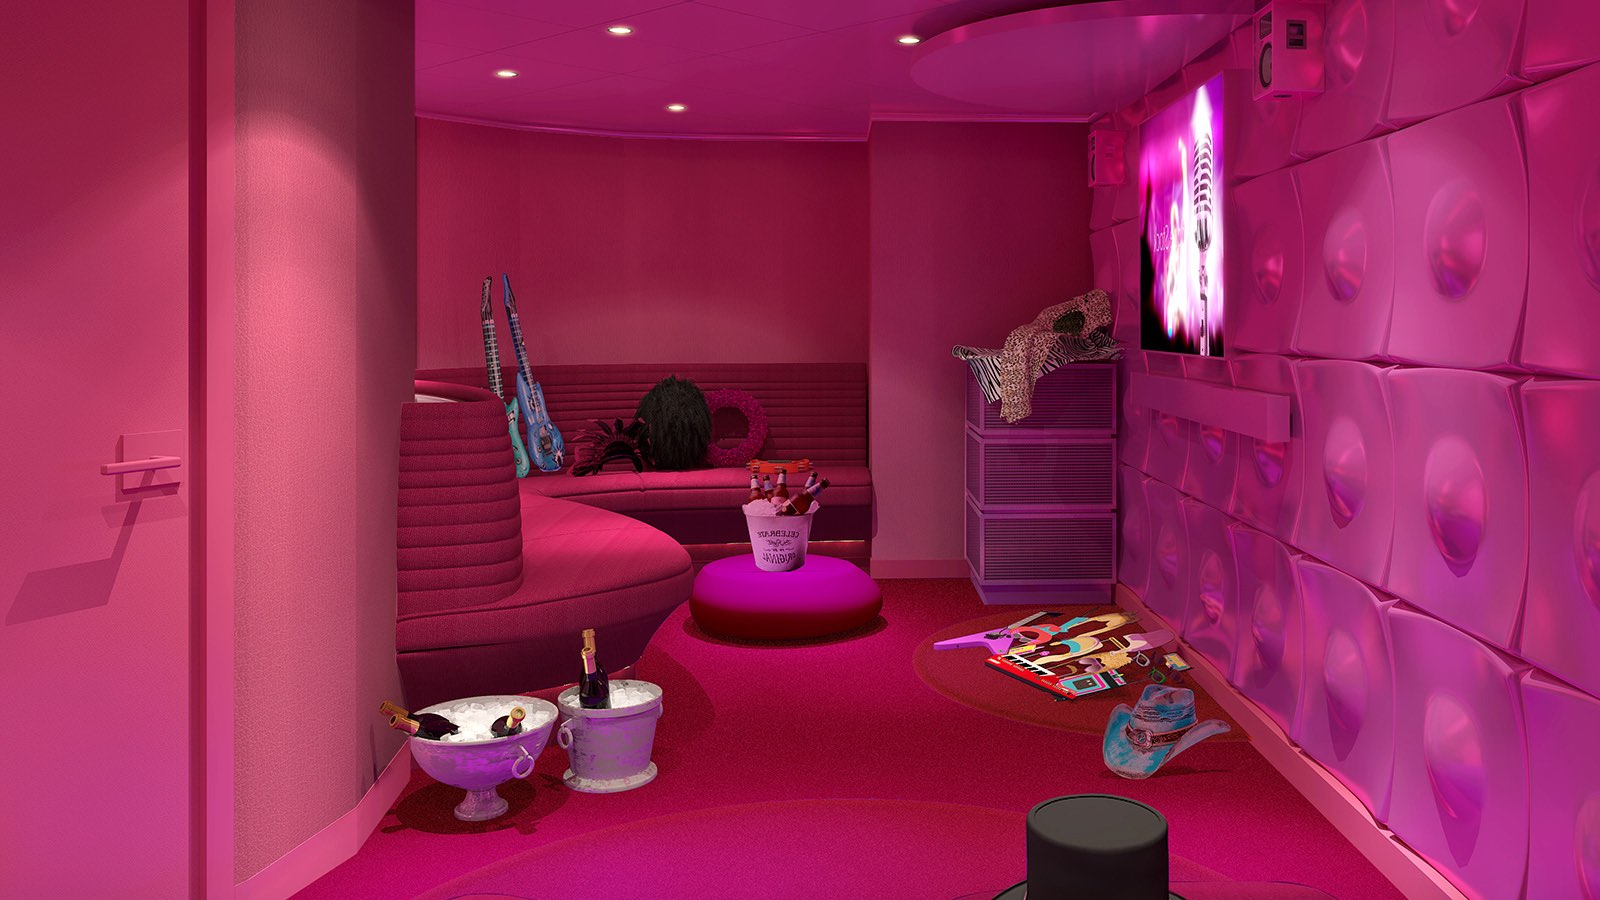 A private karaoke room with pink walls and floor